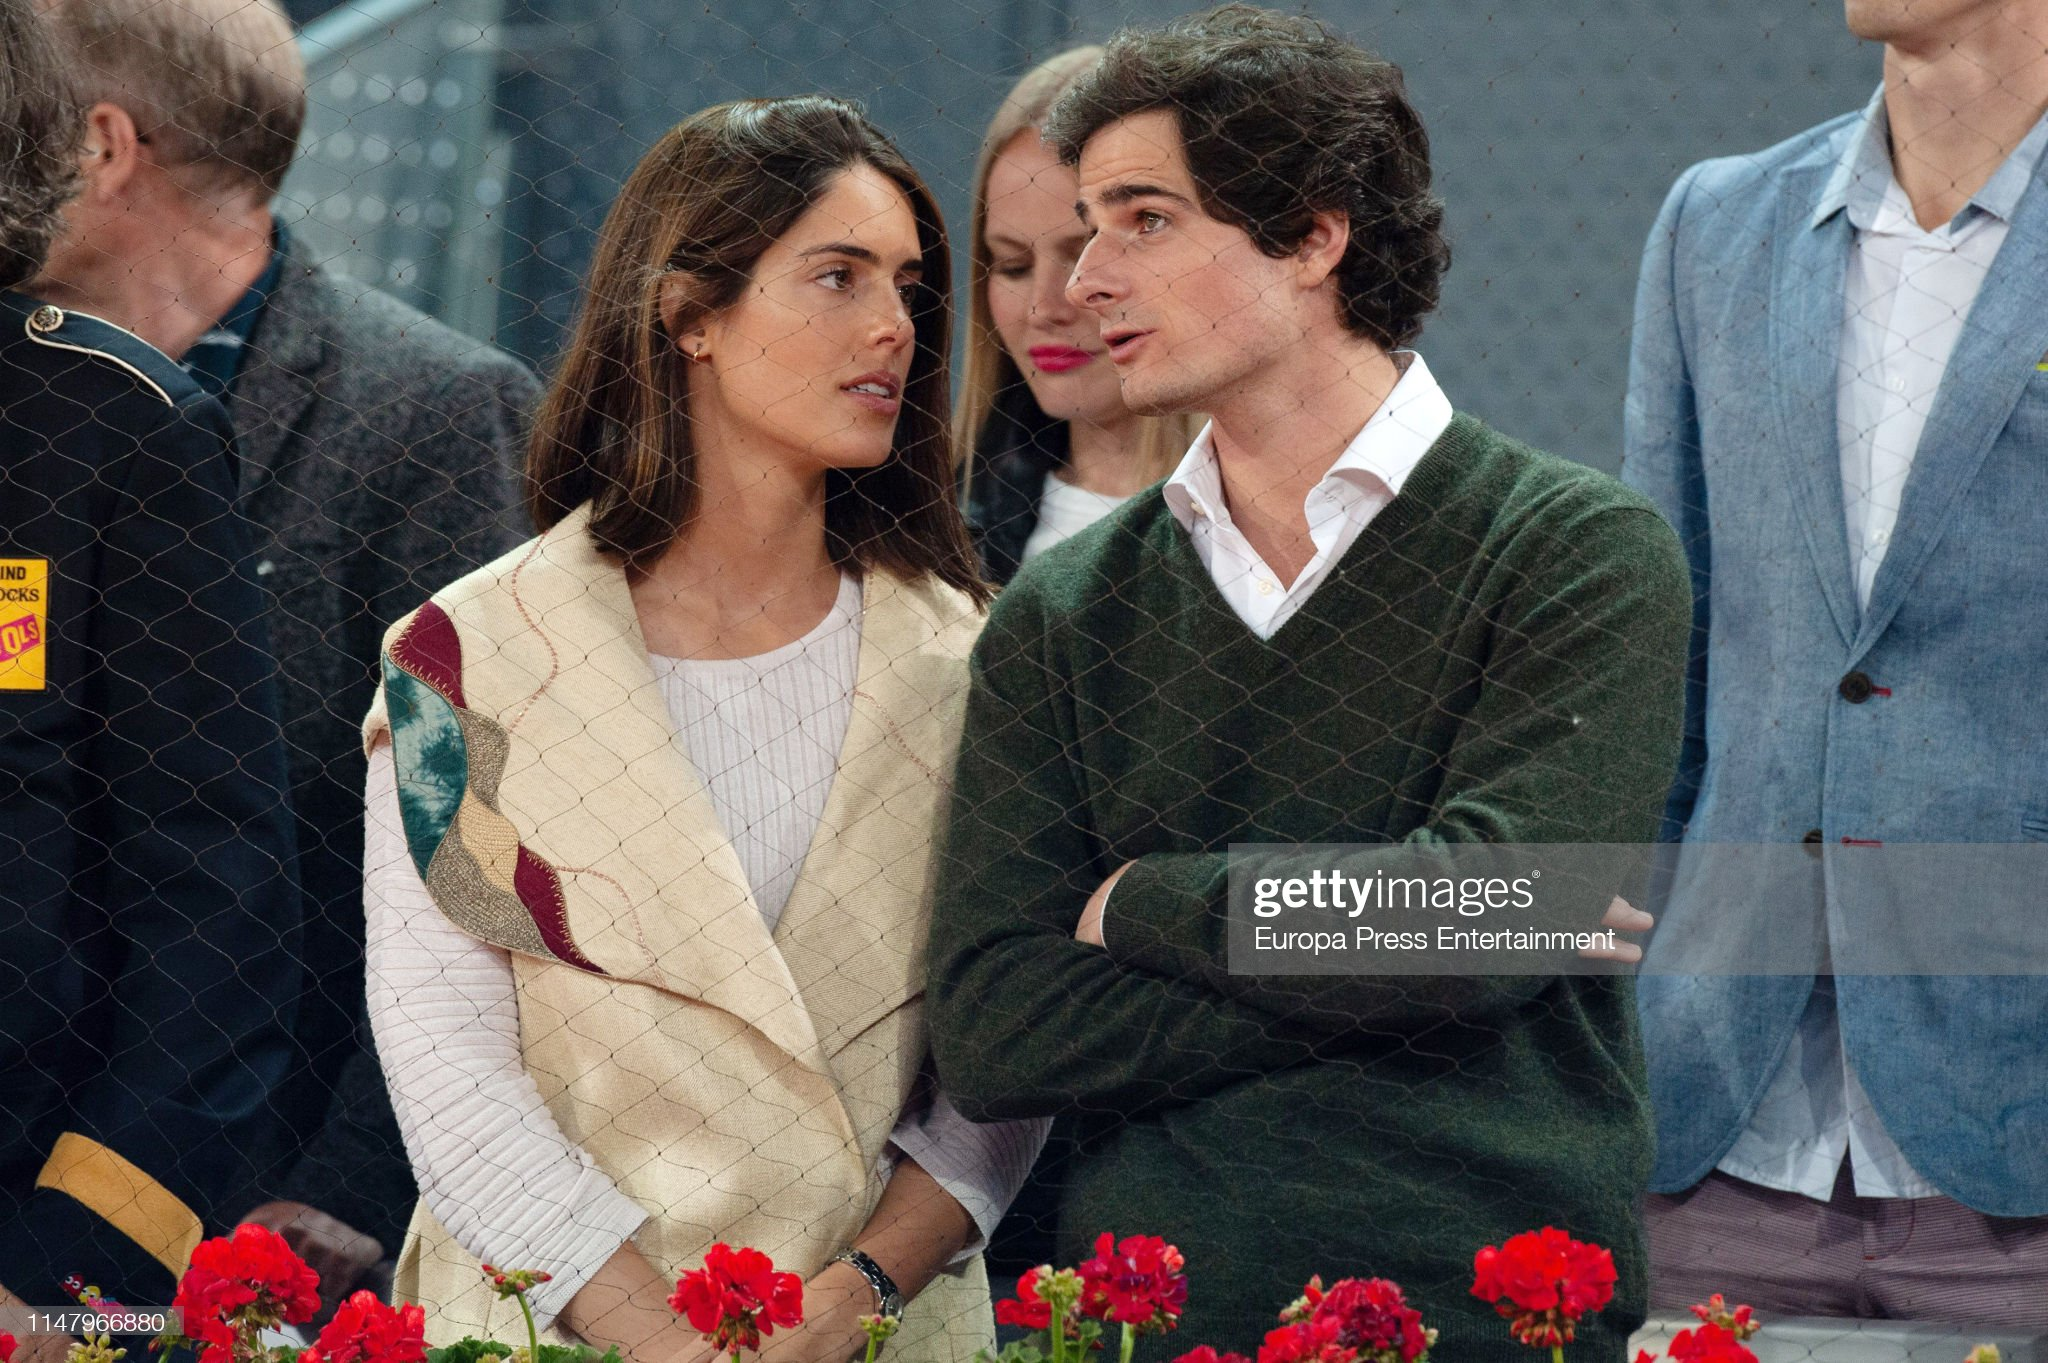 https://media.gettyimages.com/photos/fernando-fitzjames-stuart-y-sols-and-sofia-palazuelo-attend-mutua-picture-id1147966880?s=2048x2048